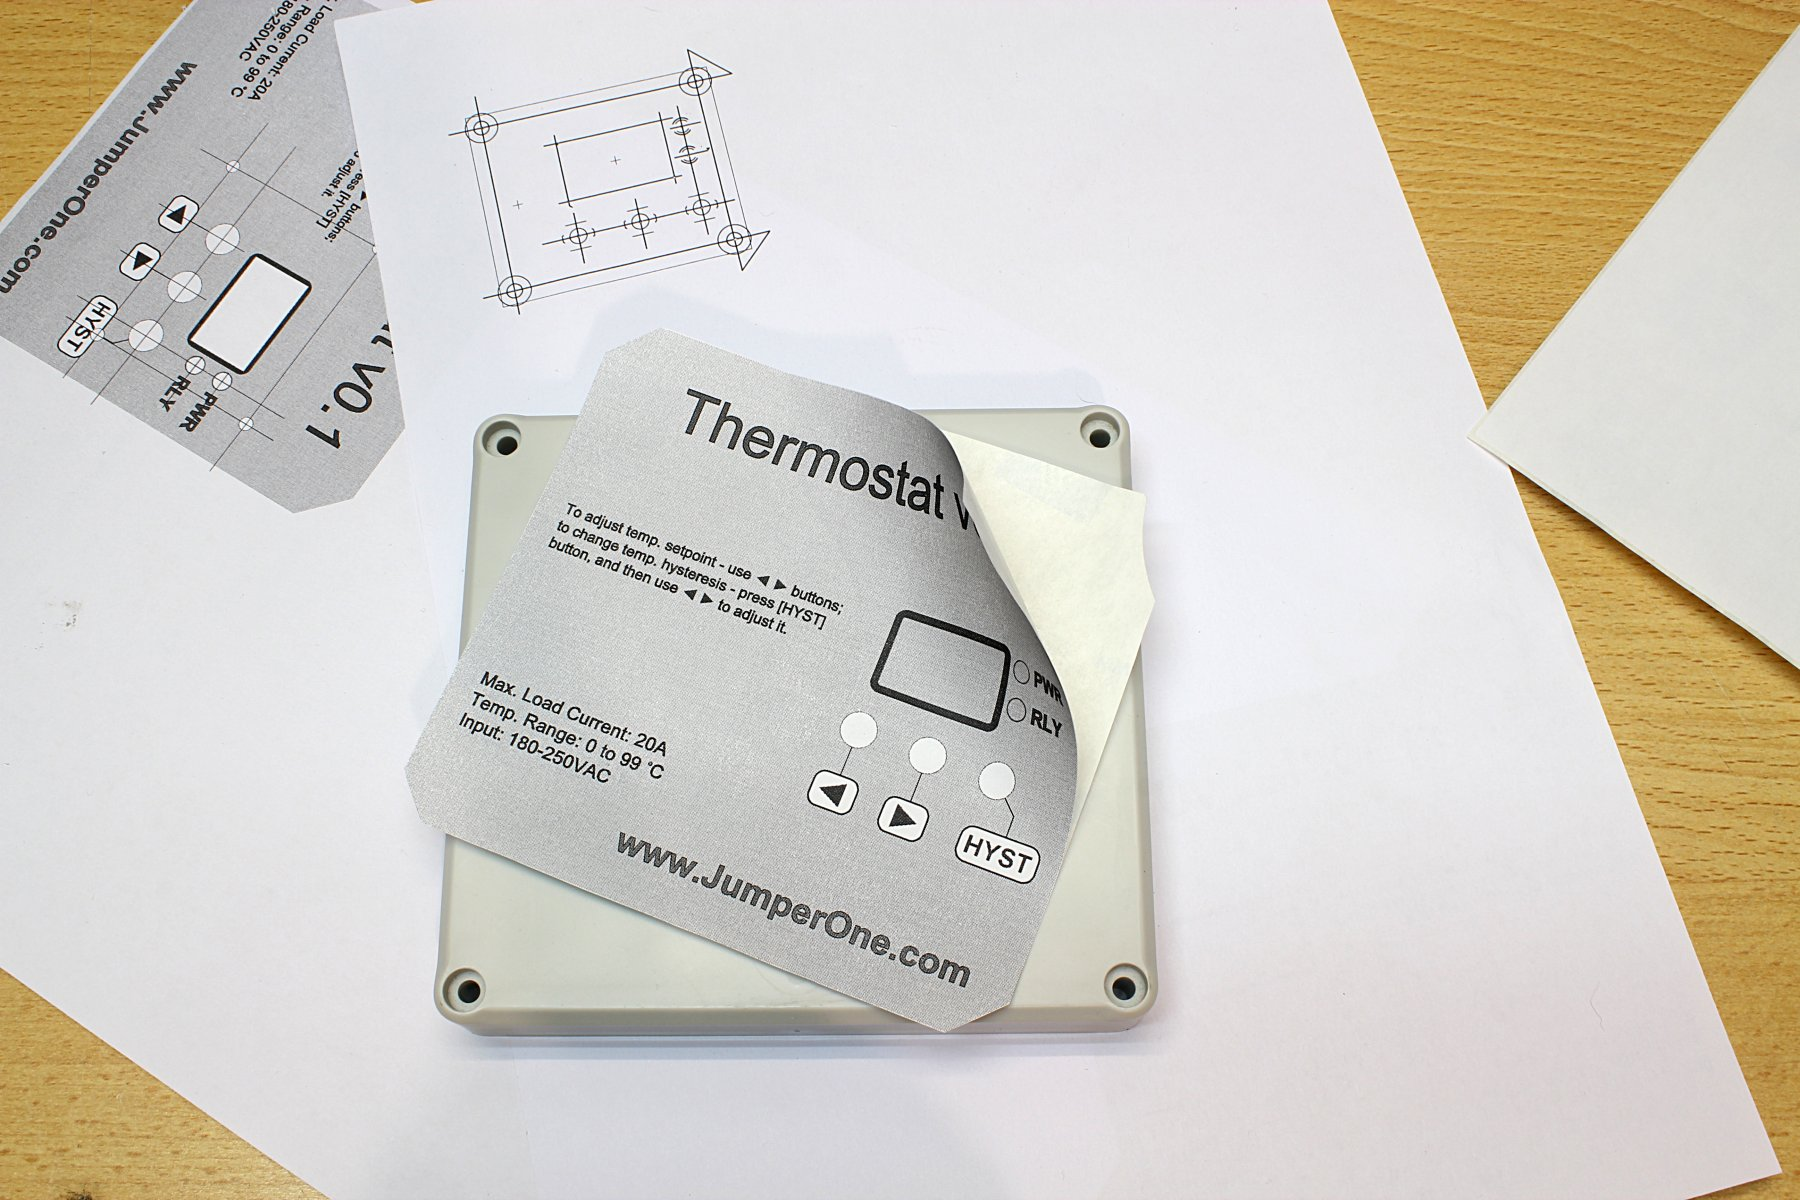 How To Make Nice Looking Diy Front Panel Jumper One Circuit Board Stickers Sticker Designs Label Now When Is In